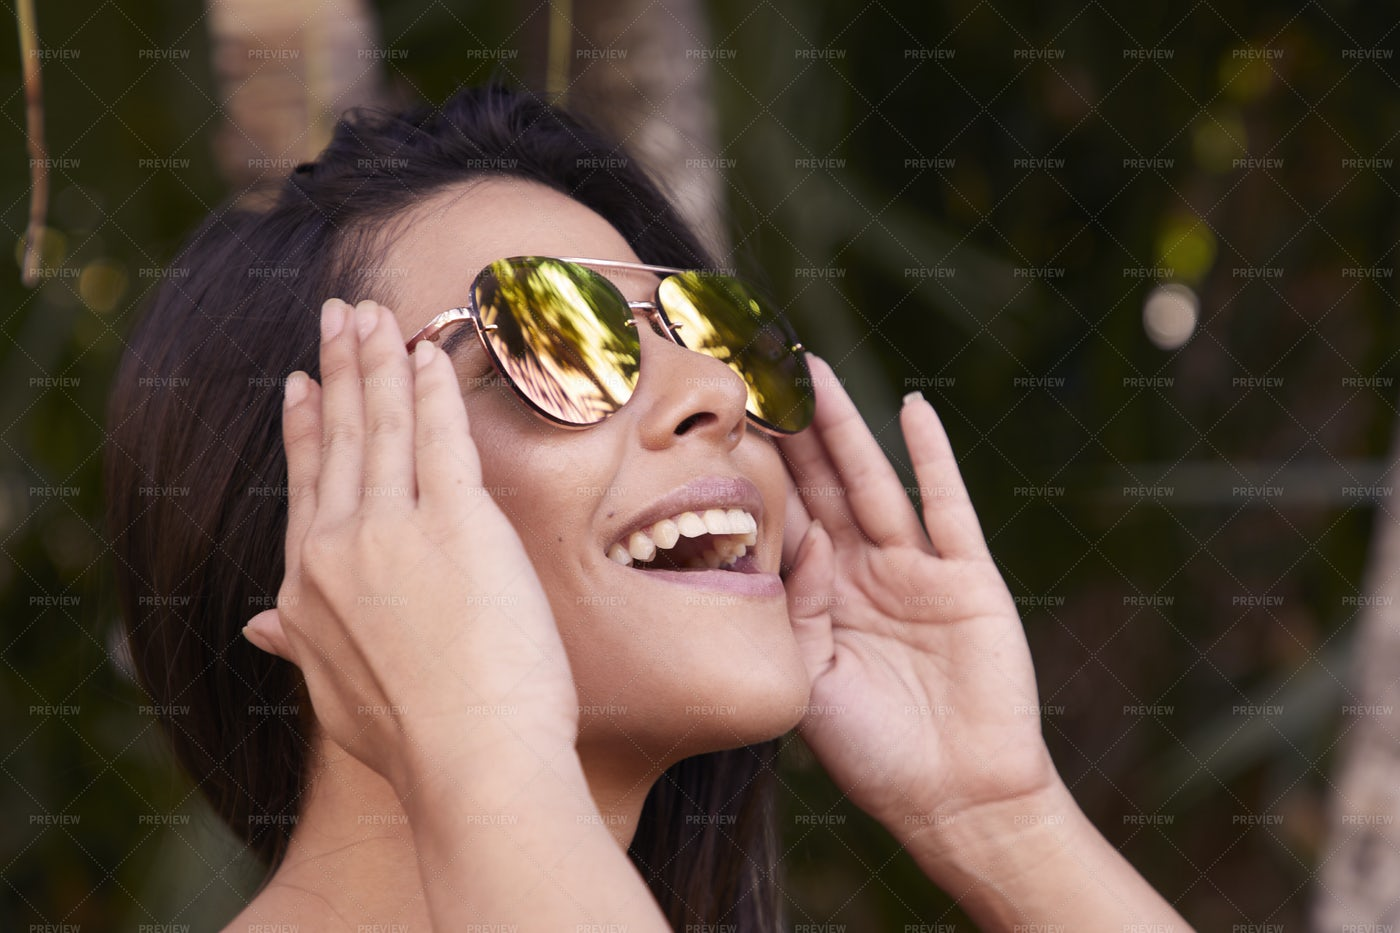 Cool girl in reflecting sunglasses: Stock Photos